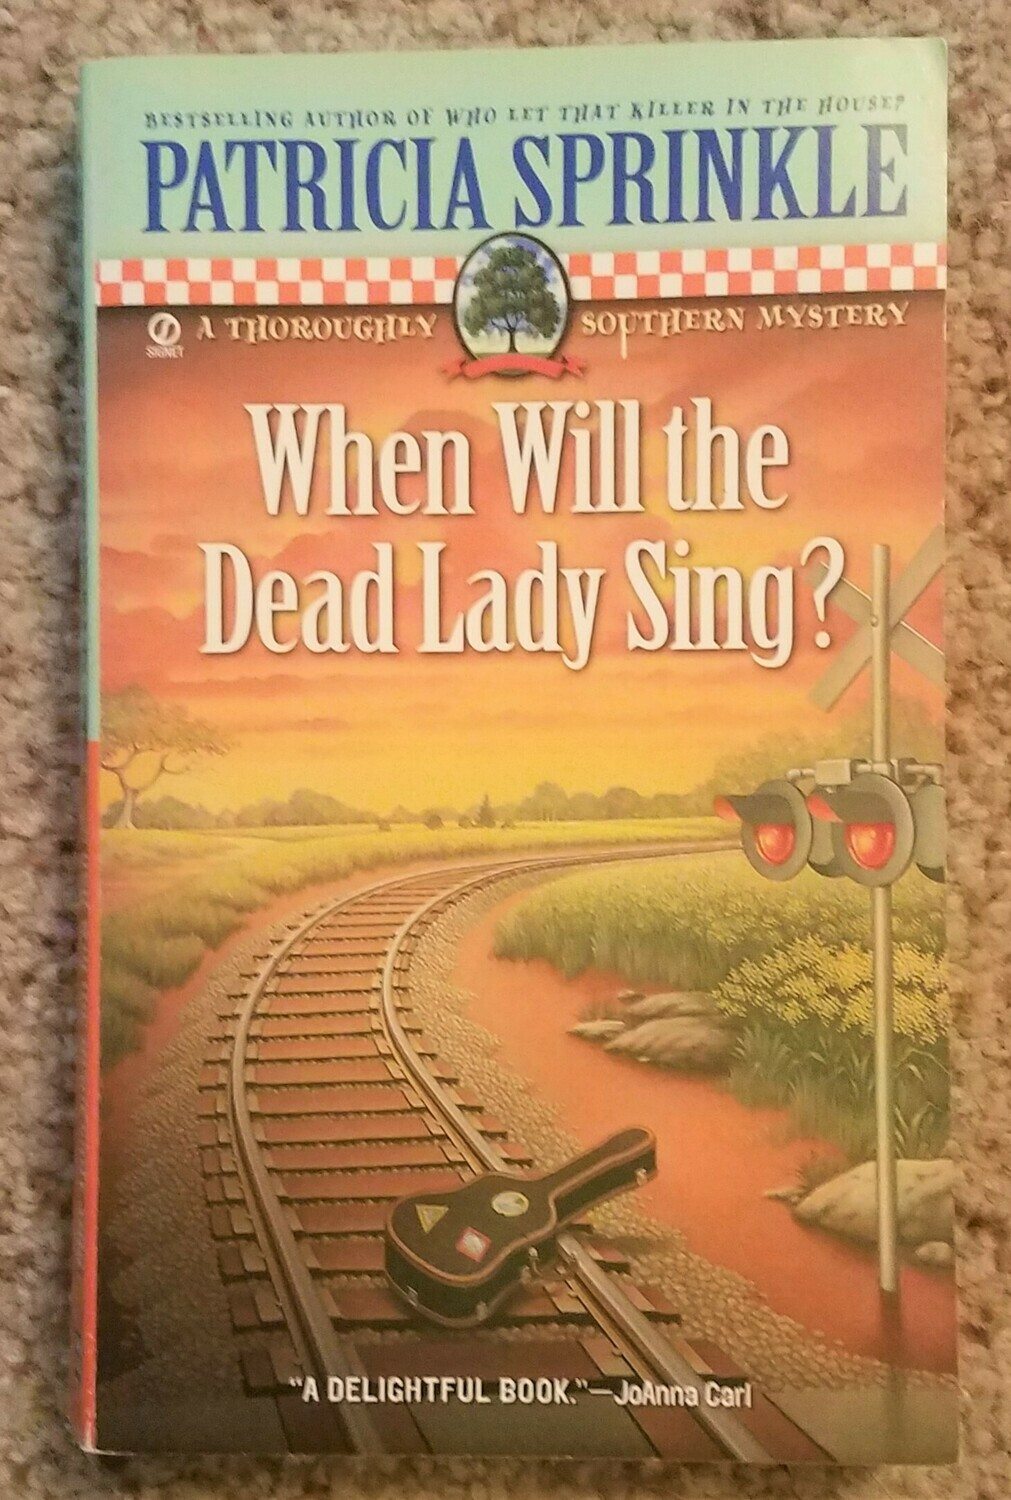 When Will the Dead Lady Sing? by Patricia Sprinkle